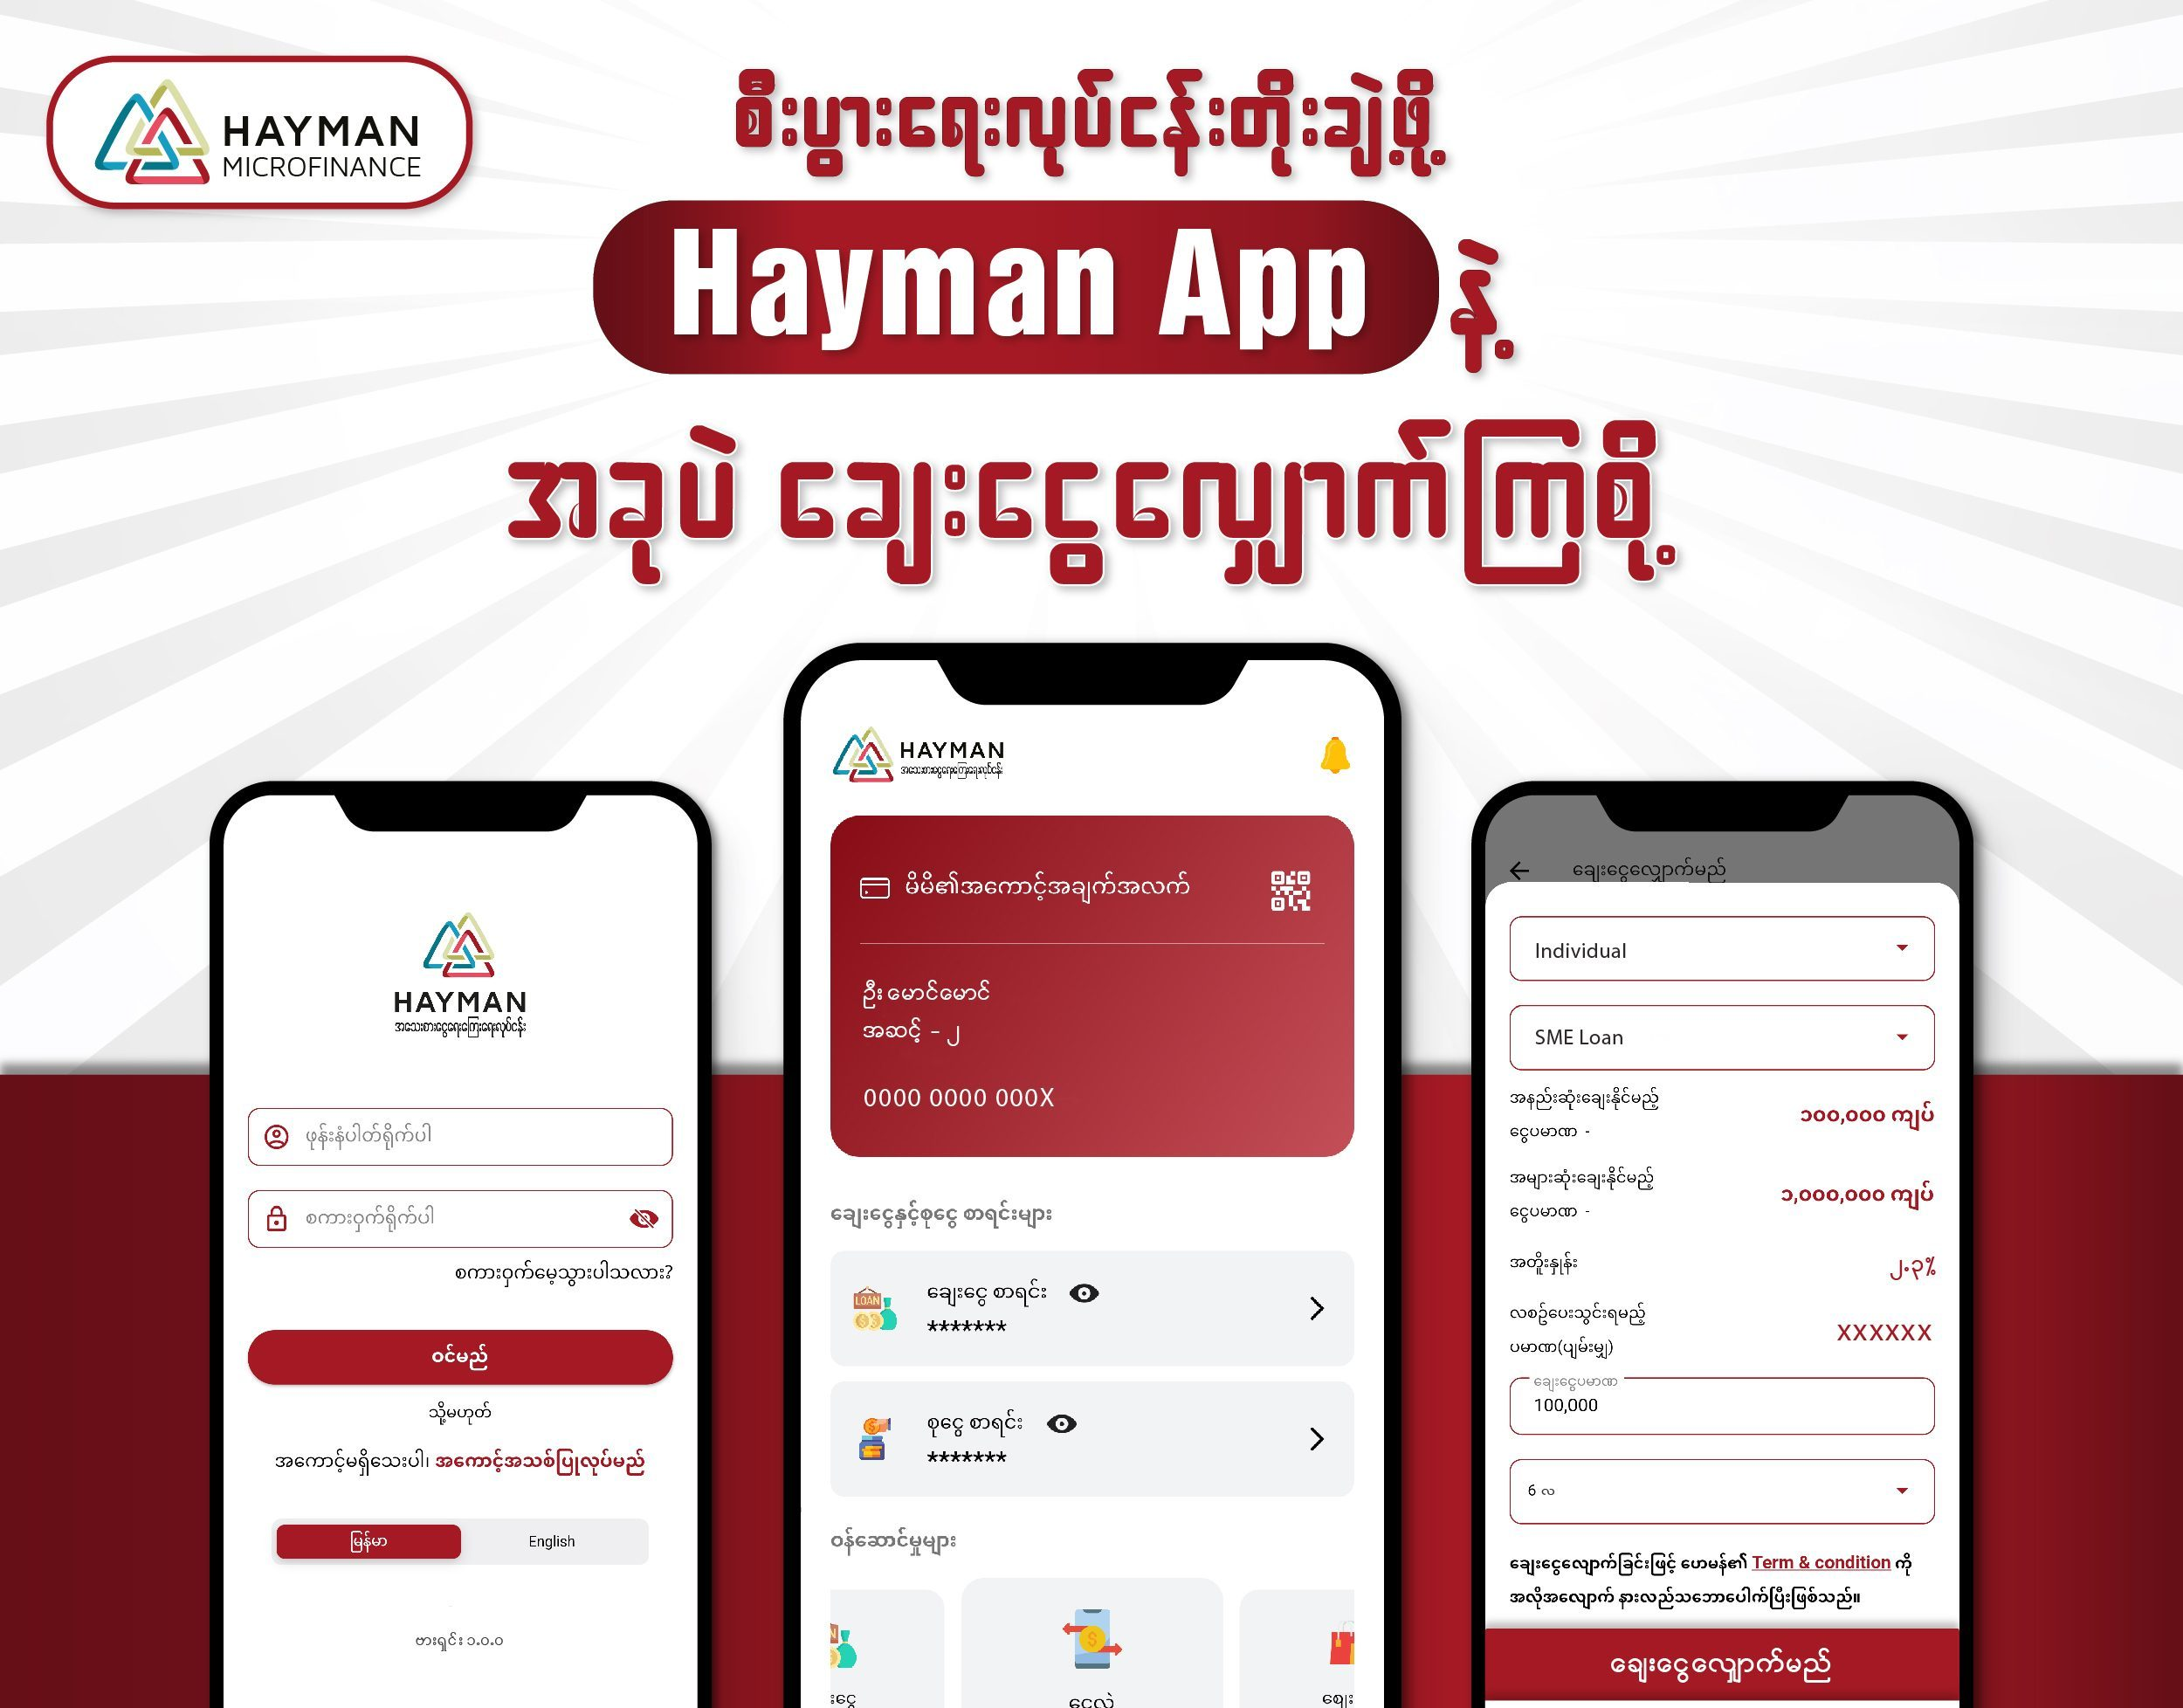 Hayman Microfinance launches industry-leading…